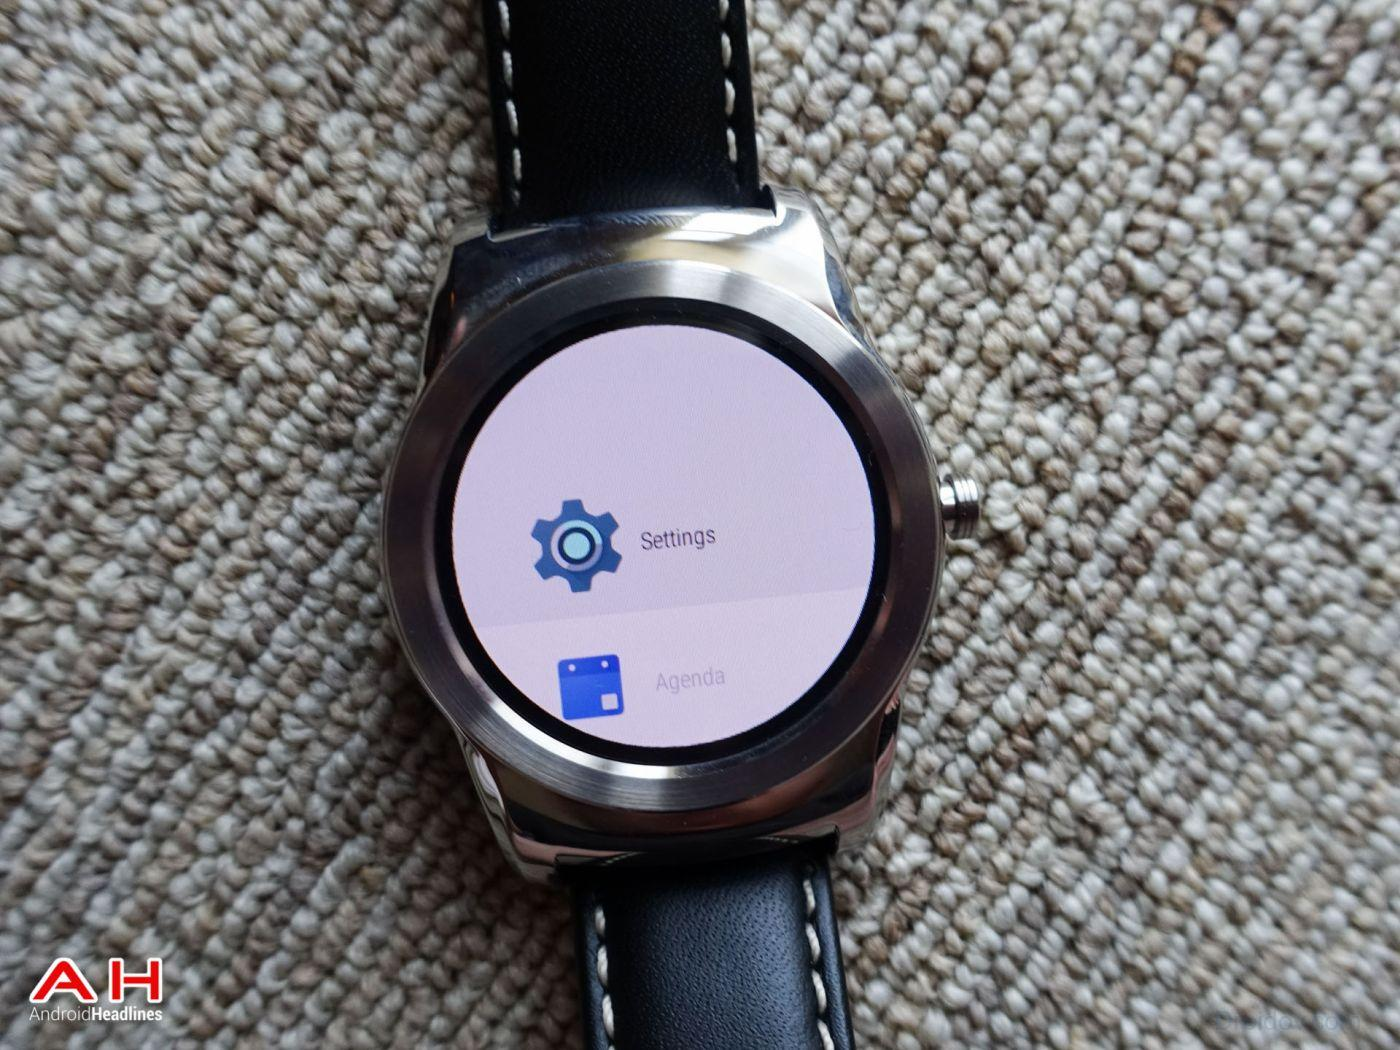 LG-Watch-Urbane-Review-AH-4